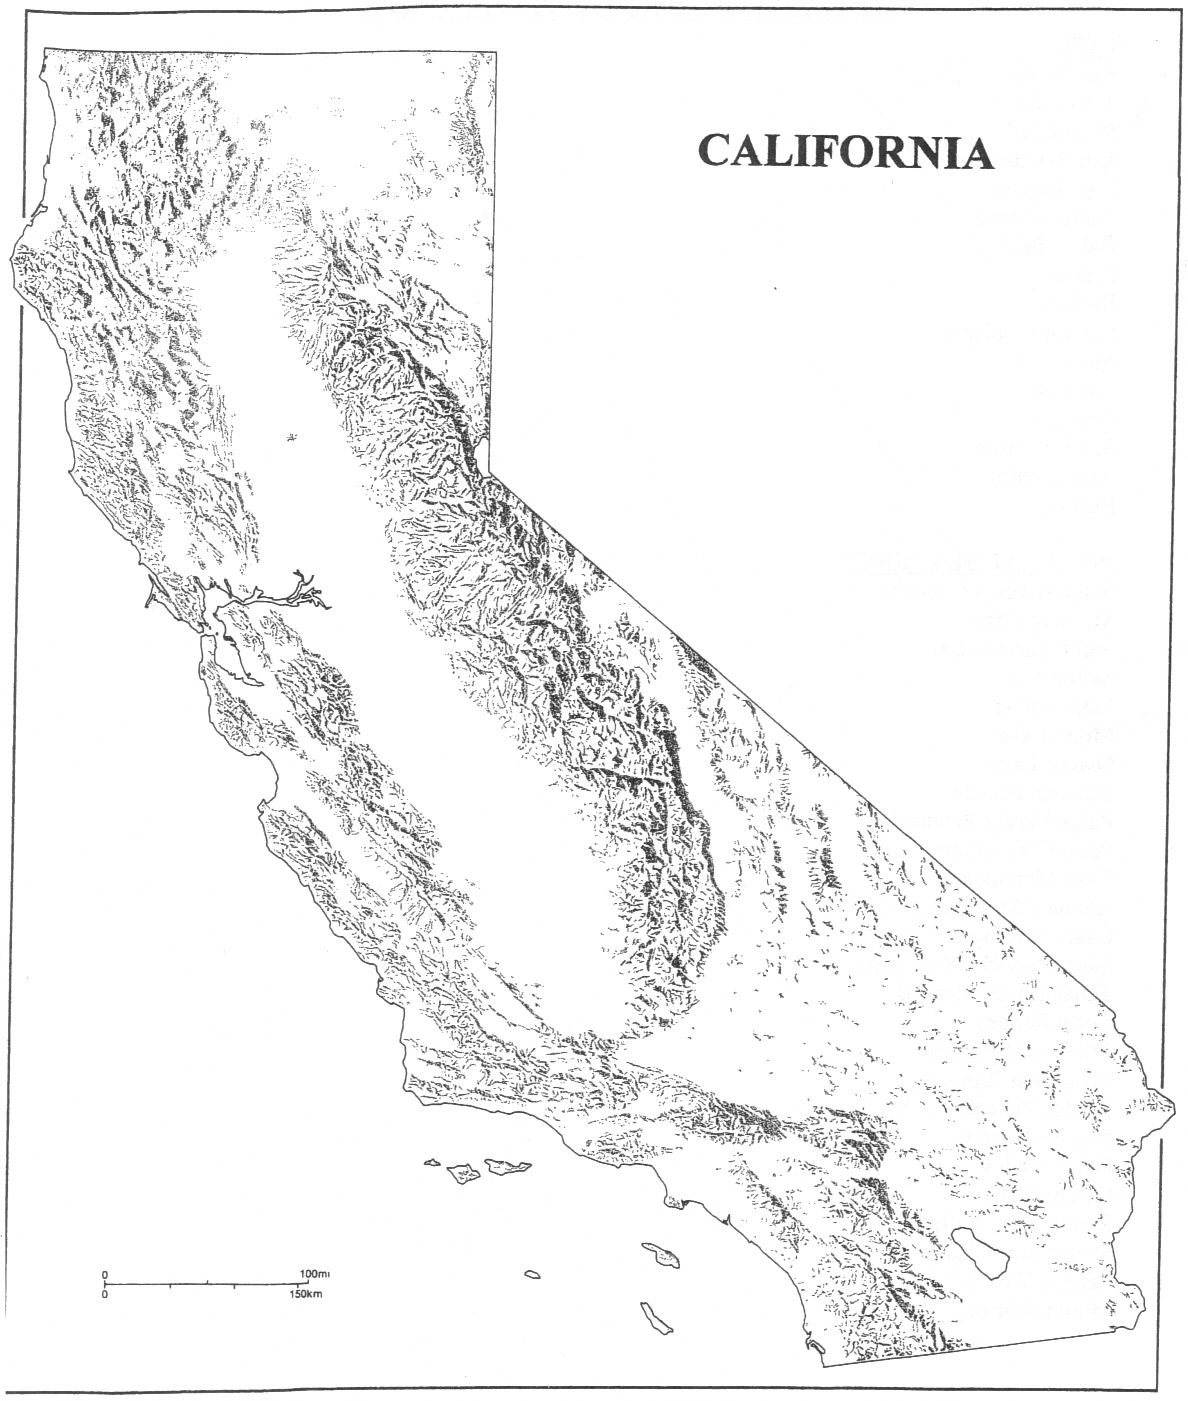 Free California Map Outline Download Free Clip Art Free Clip Art On Clipart Library